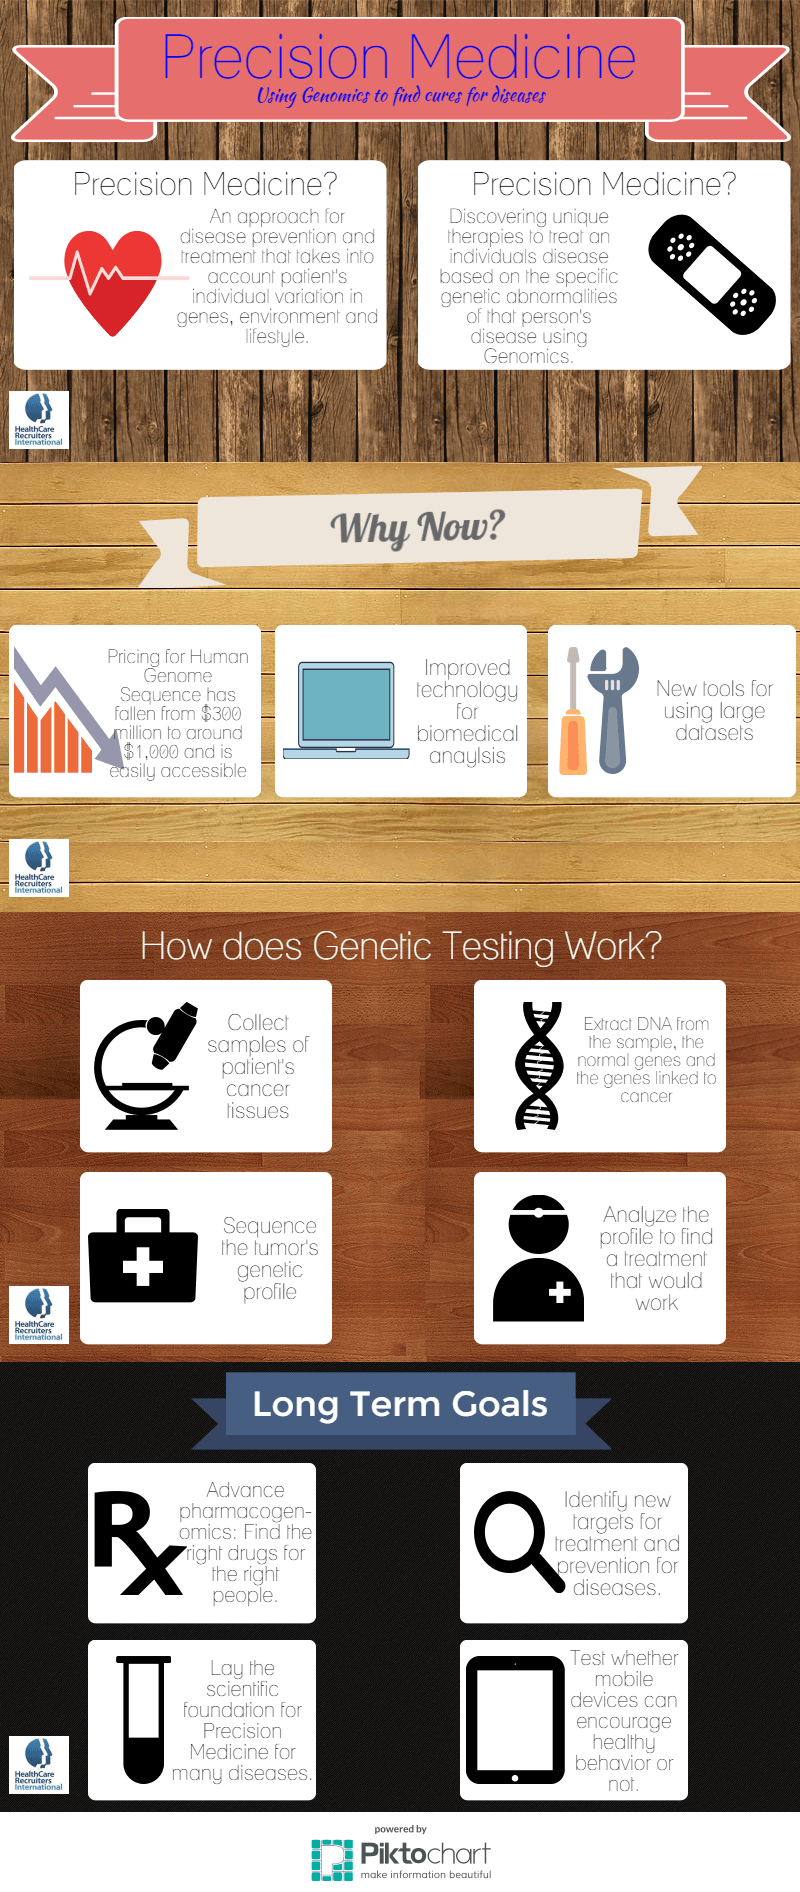 This is an infographic detailing Precision Medicine and the rise in the use of Genomics to help cure diseases and individualize medicine in 2015.